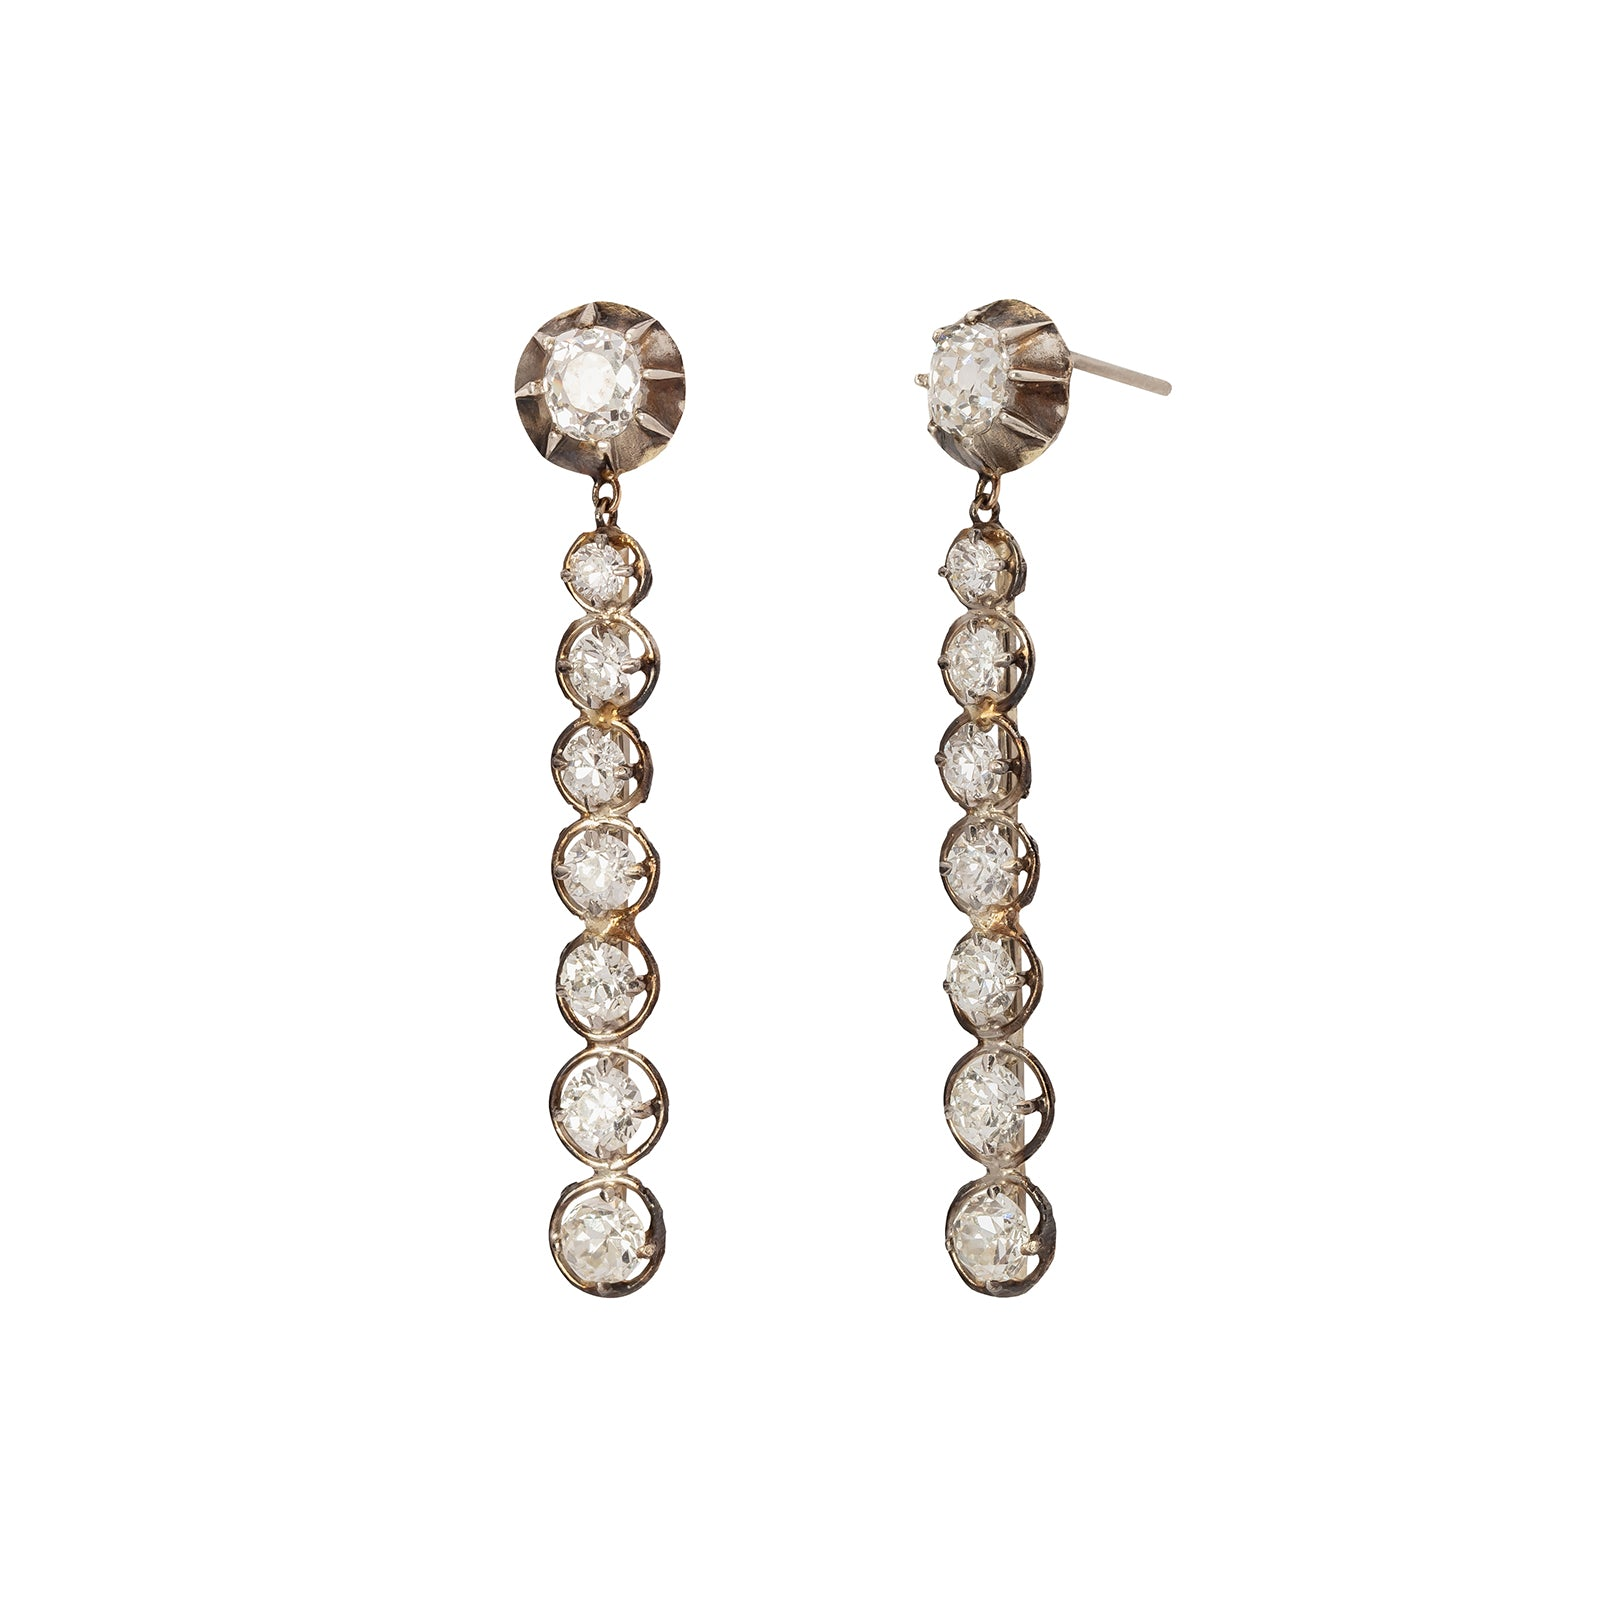 Jenna Blake Victorian Drop Diamond Earrings - Earrings - Broken English Jewelry